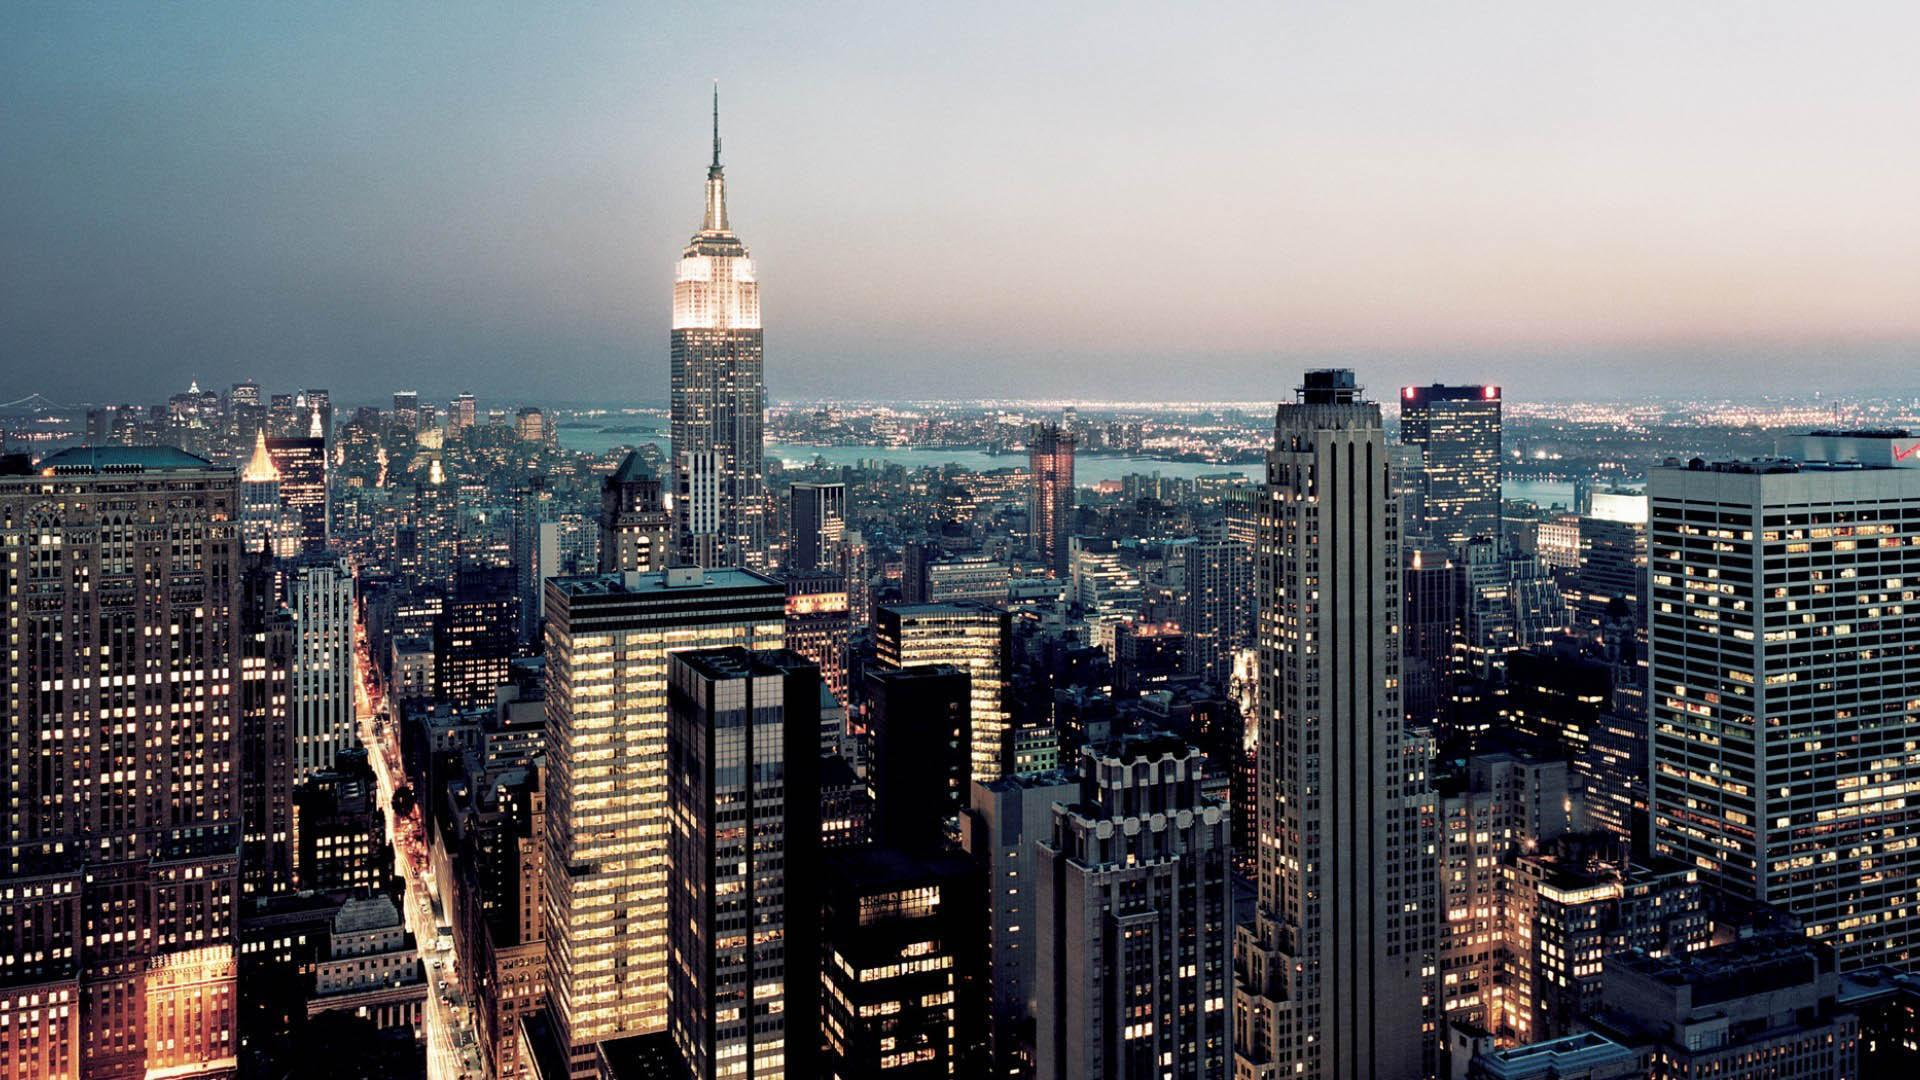 New York City Wallpapers Widescreen 1920x1080